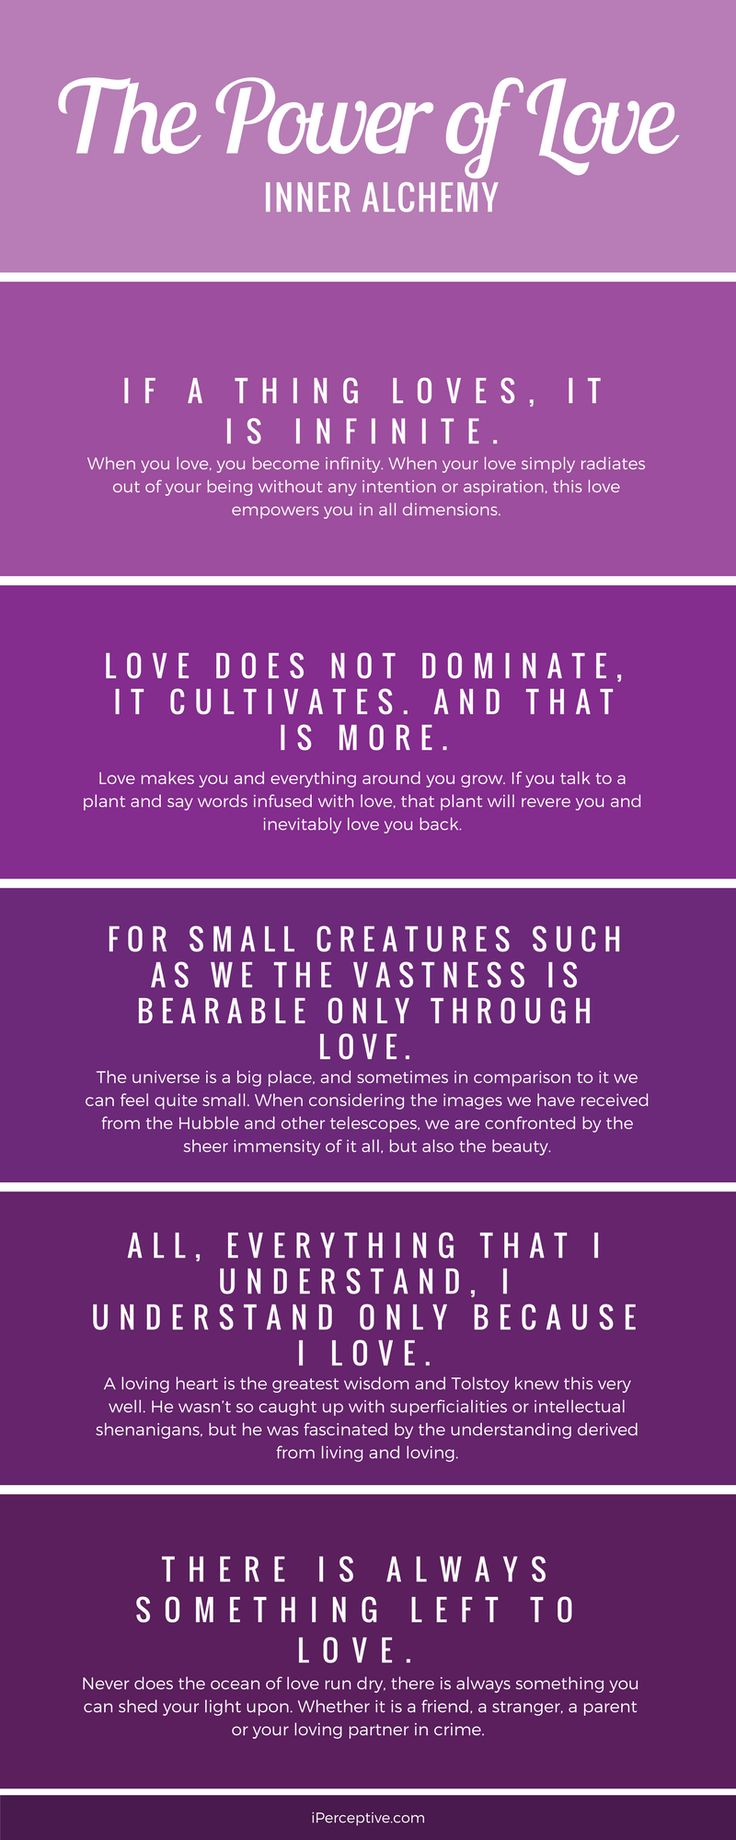 The Power of Love: 15 Love Quotes